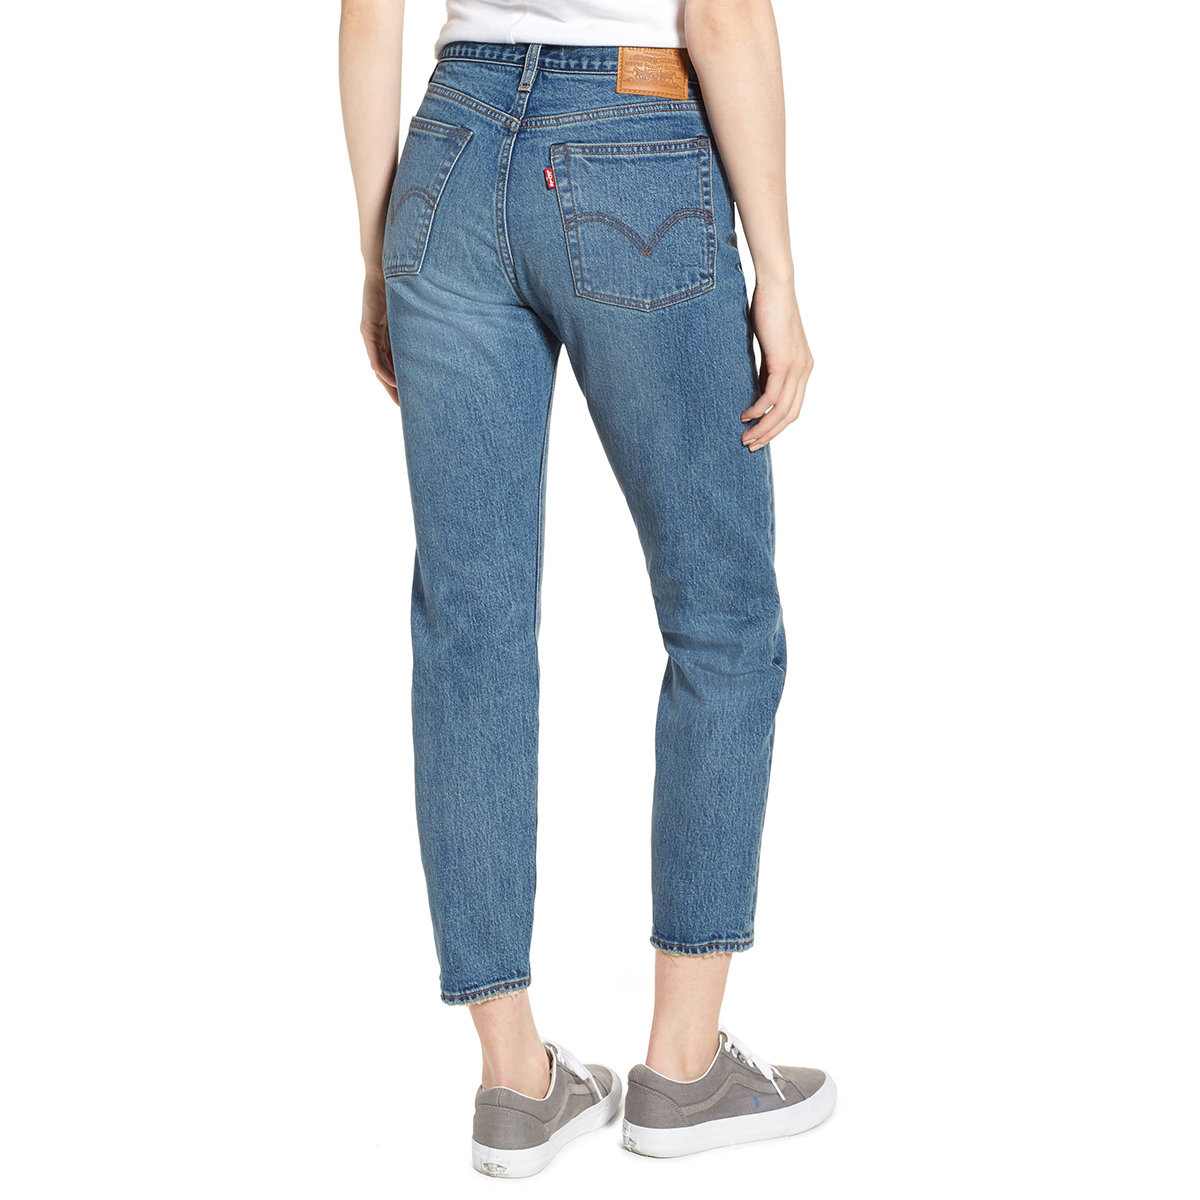 jeans-for-flat-butt-levis-wedgie